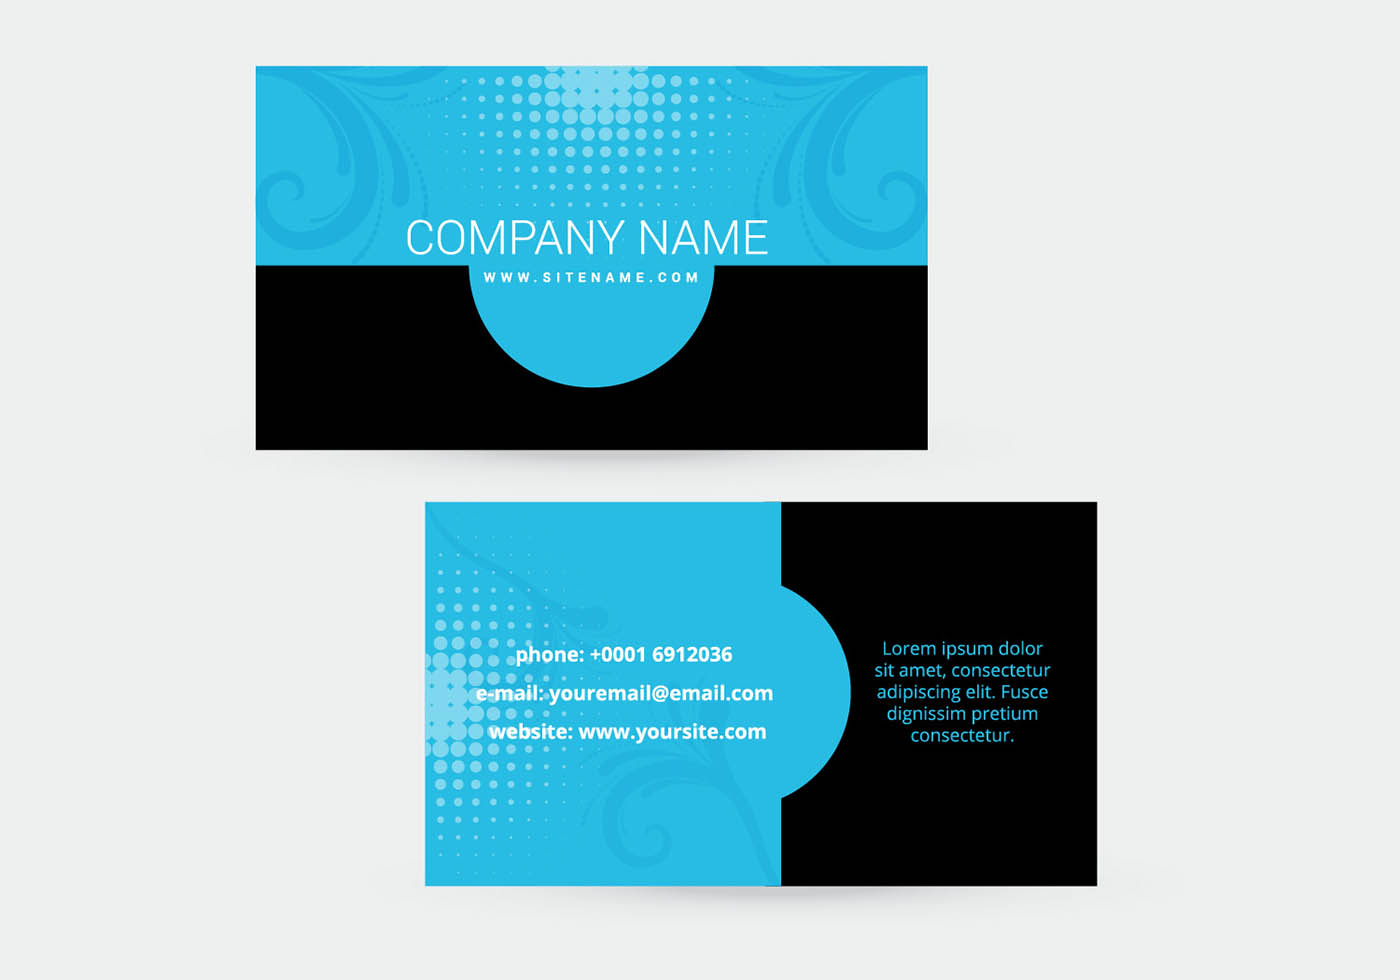 Beautiful business card design download free vector art stock beautiful business card design download free vector art stock graphics images reheart Image collections